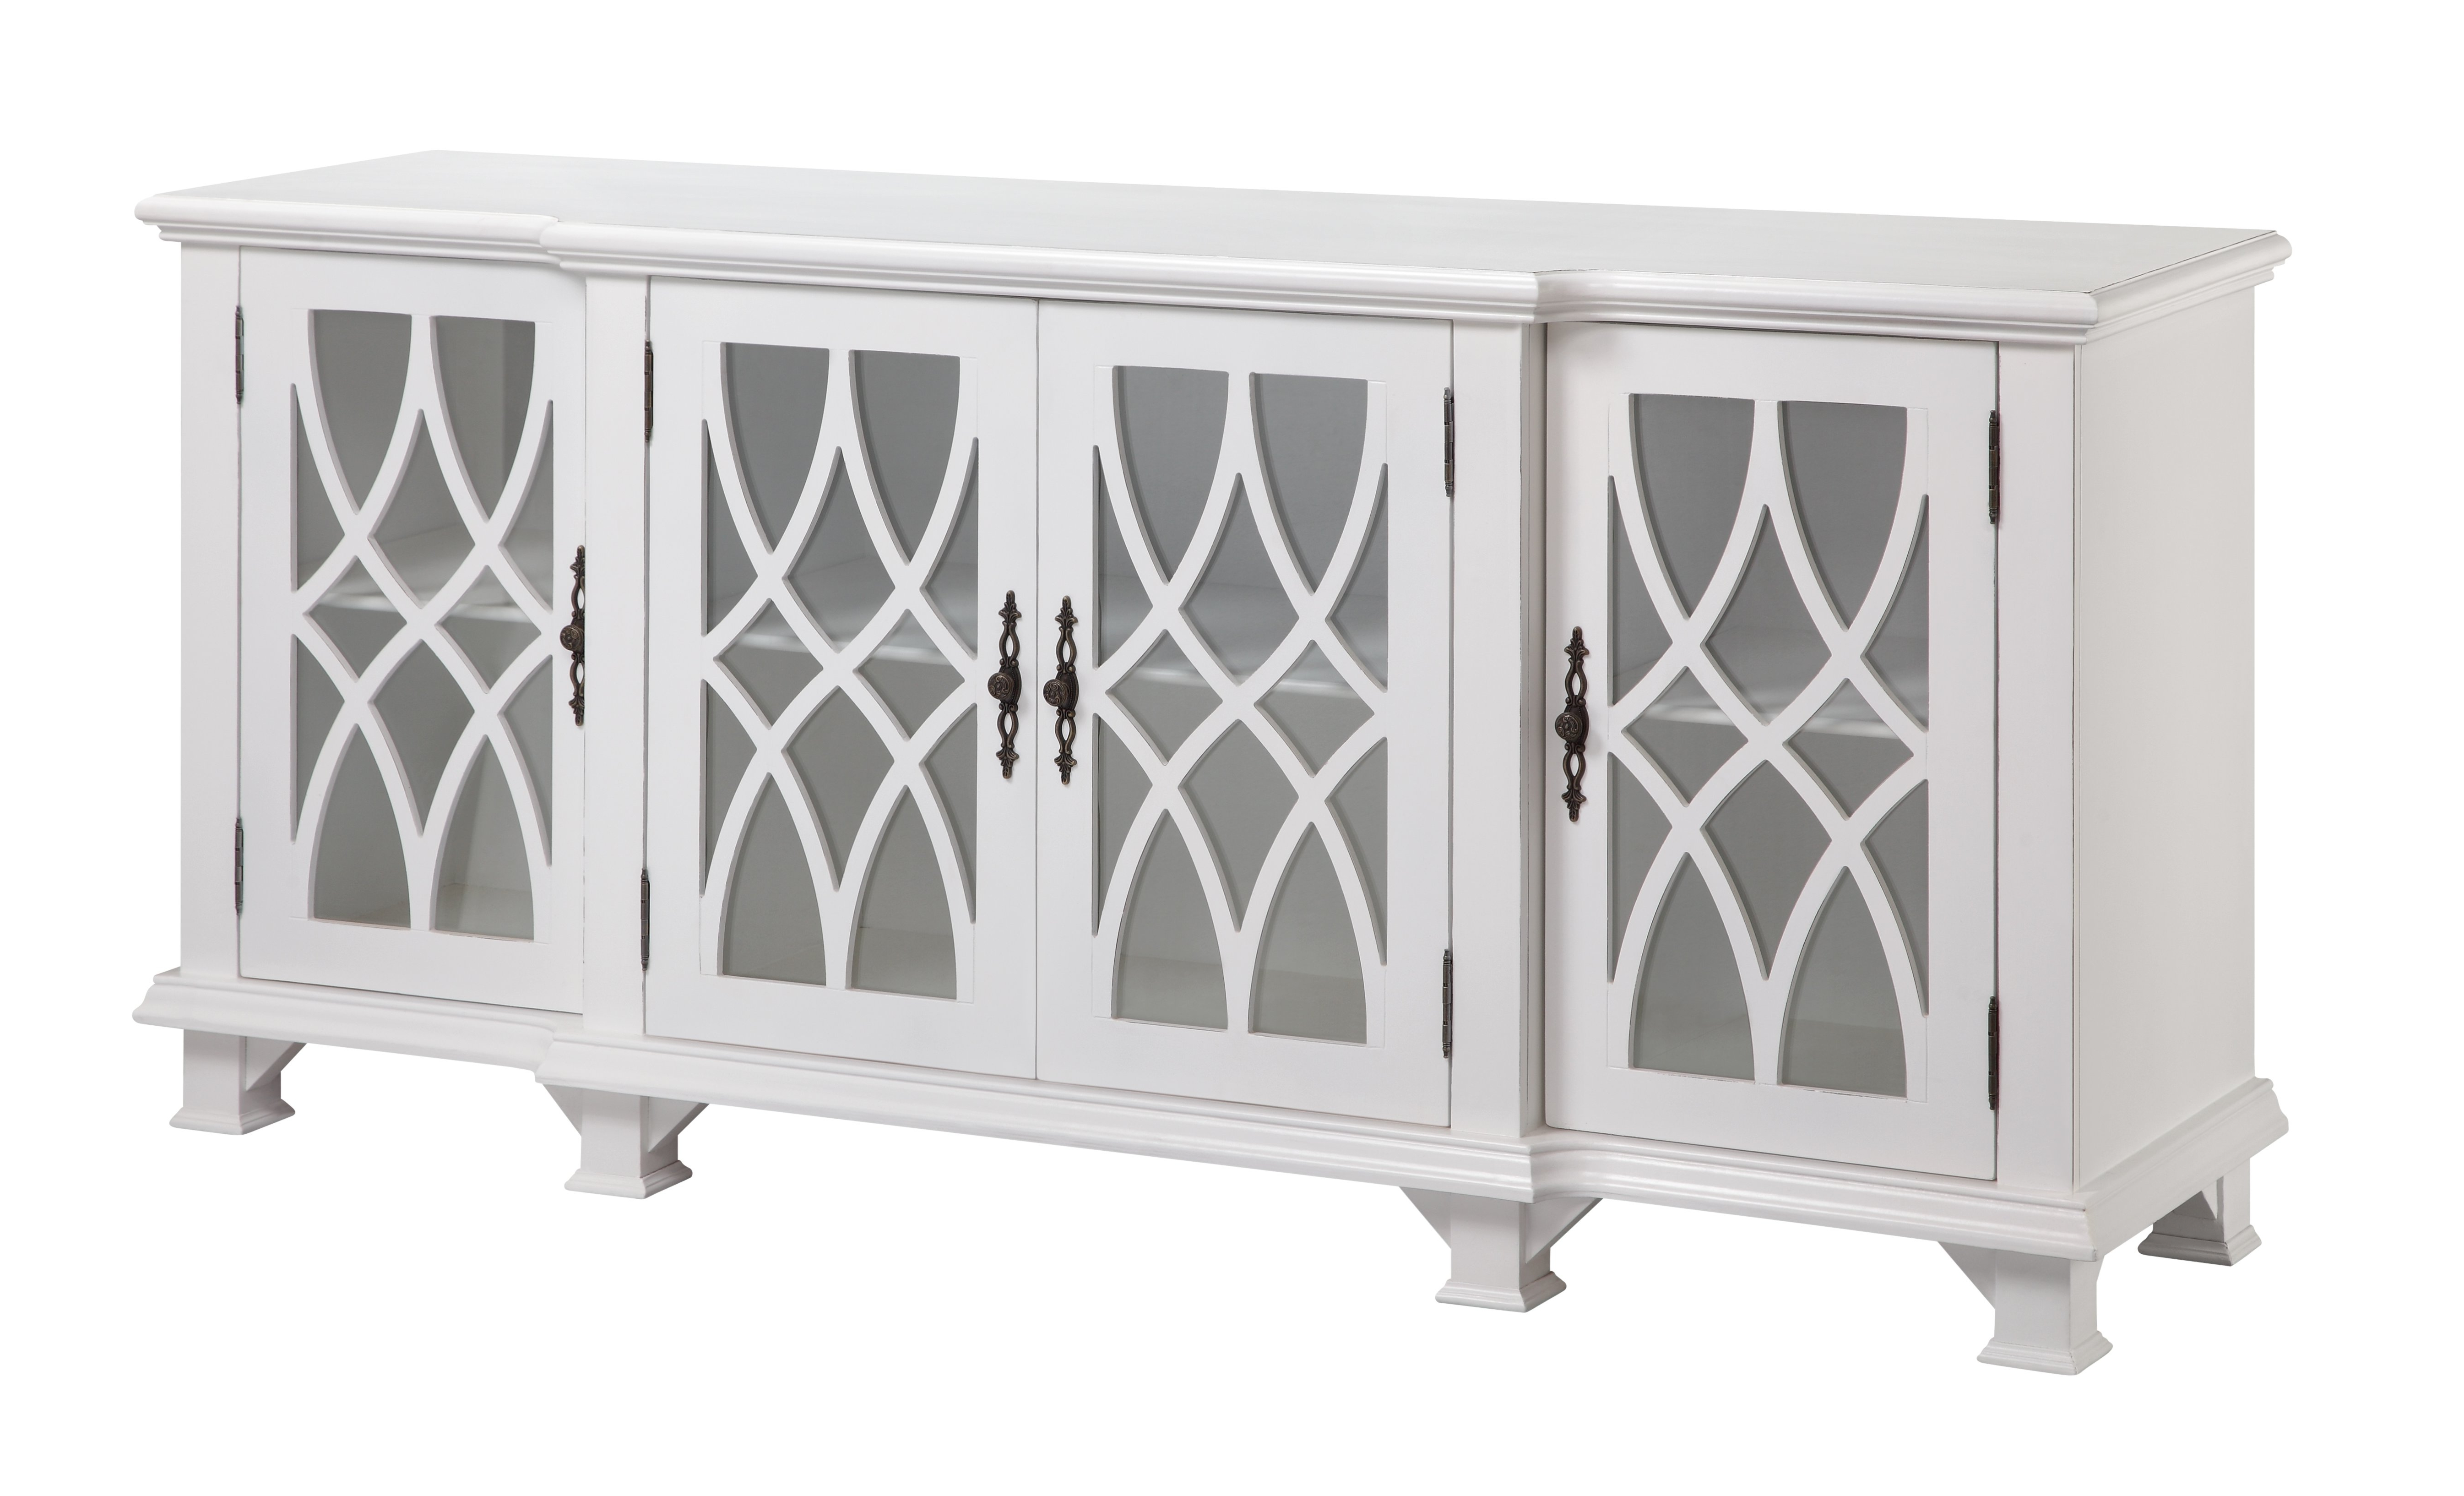 Tott And Eling Sideboard Pertaining To Most Current Papadopoulos Sideboards (View 20 of 20)